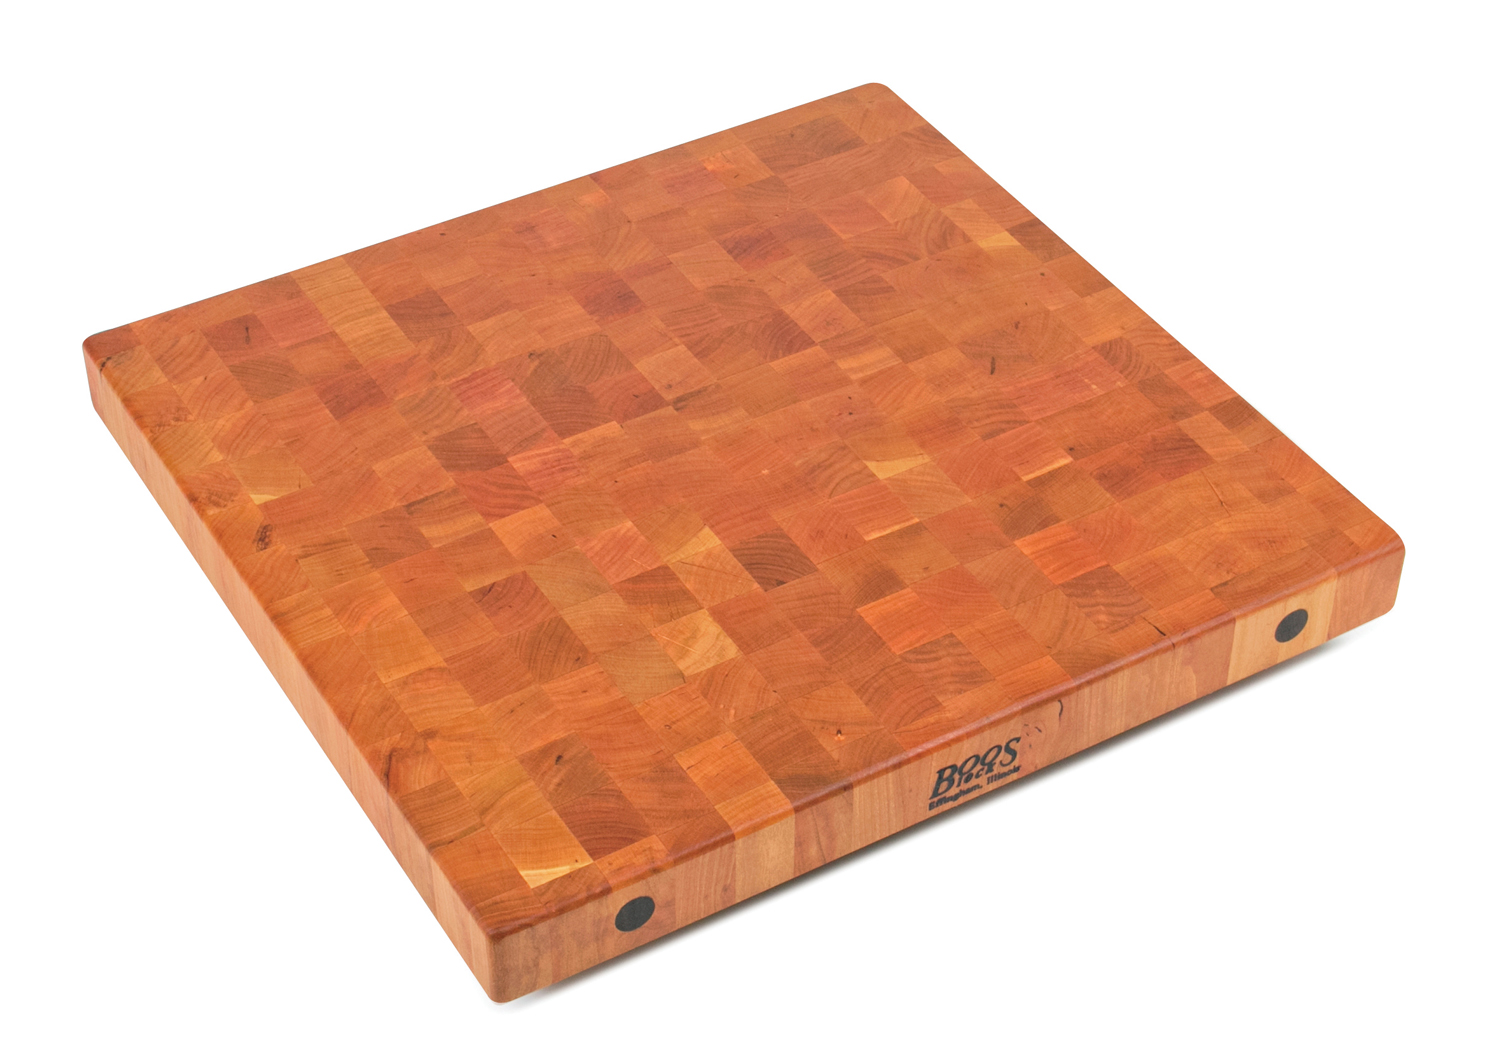 4 inch thick end grain cherry butcher block island tops 38 inches wide